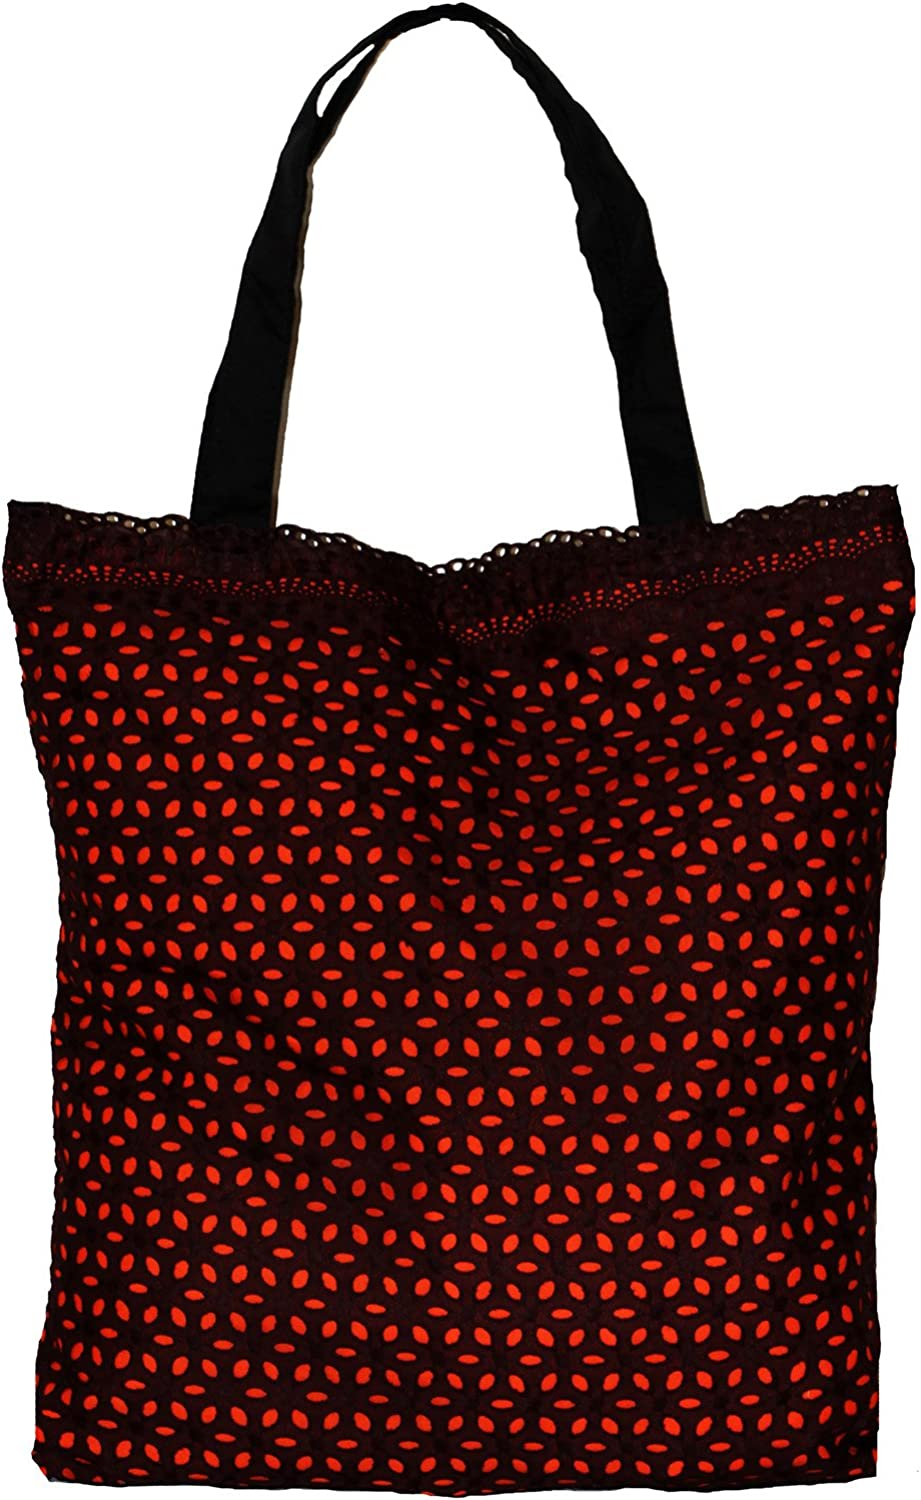 All Best Thing Bohemian Brown orange Hipster Hippie Hobo Tote Bag Purse 18in x 17in